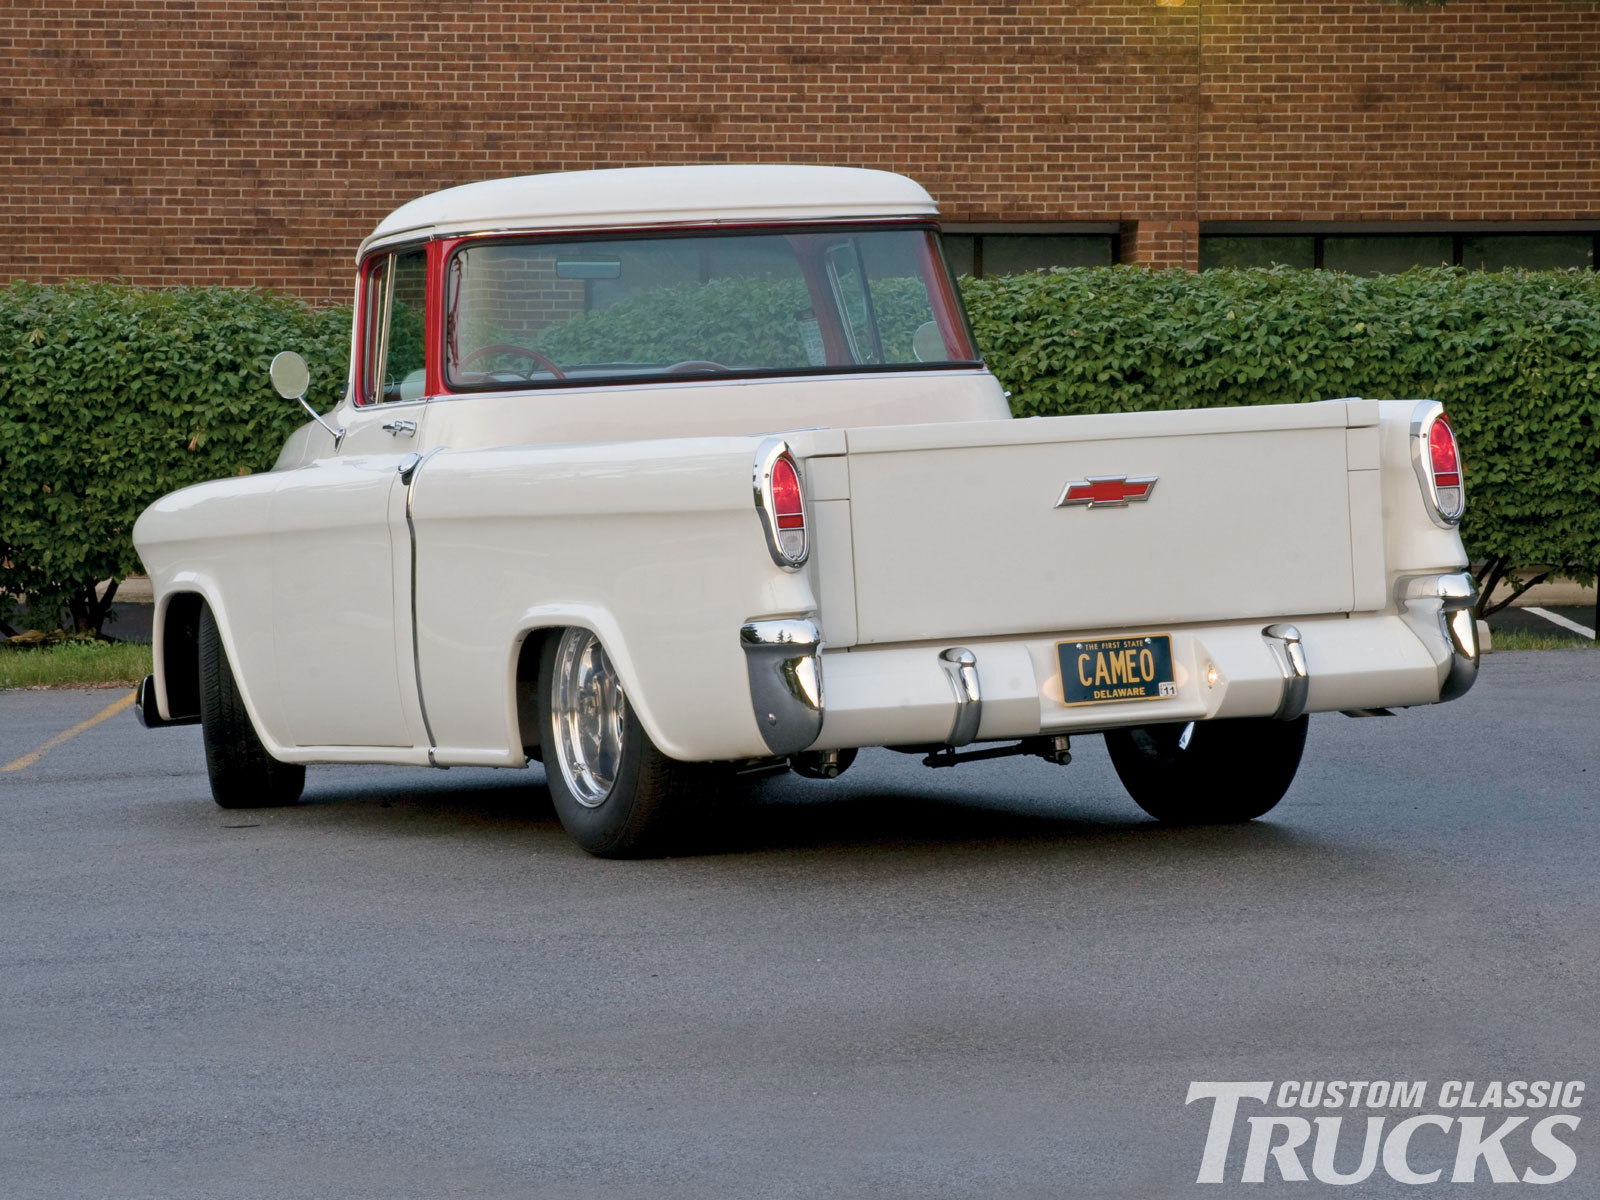 1957 Cars Restored Or Wallpapers 1955 Chevrolet Cameo Pickup Hotrod Pictures Hot Rod Cars